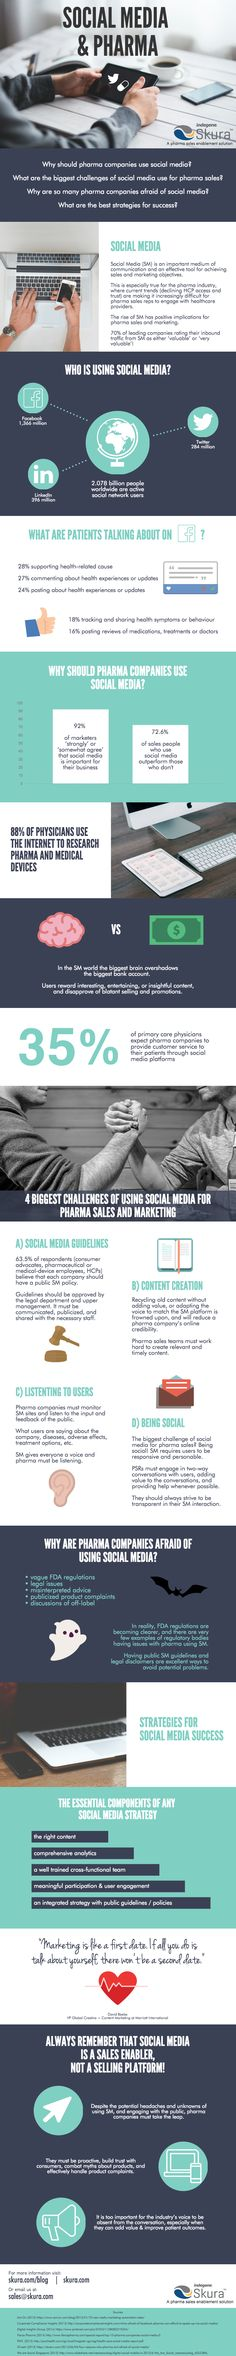 Infographic - pharma trends - how to use social media for pharma sales